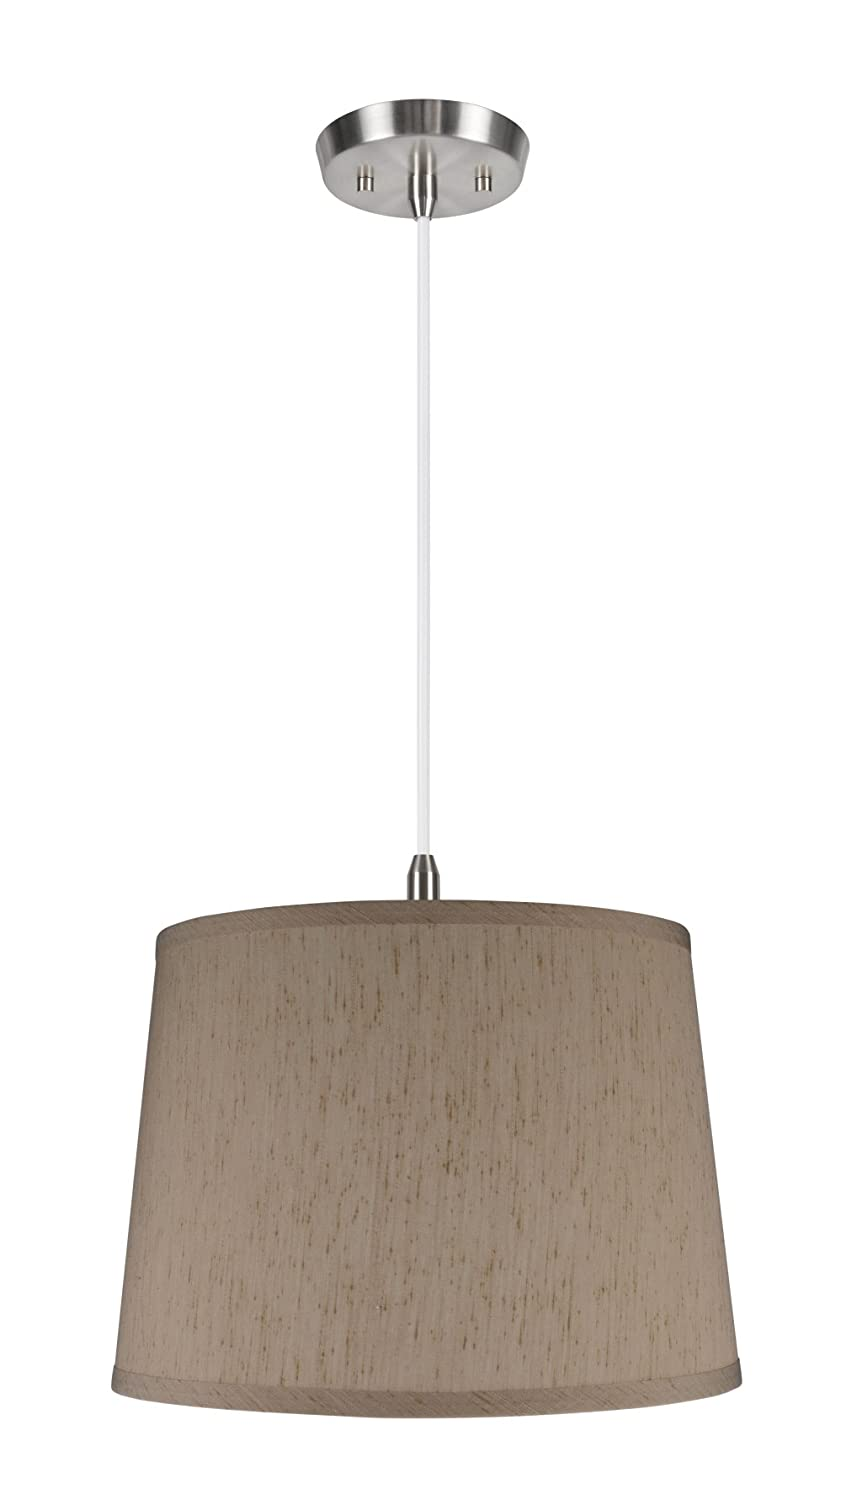 Shade in Off White 12 x 14 x 10 Off Aspen Creative 72052 One-Light Pendant with Hardback Shaped Spider